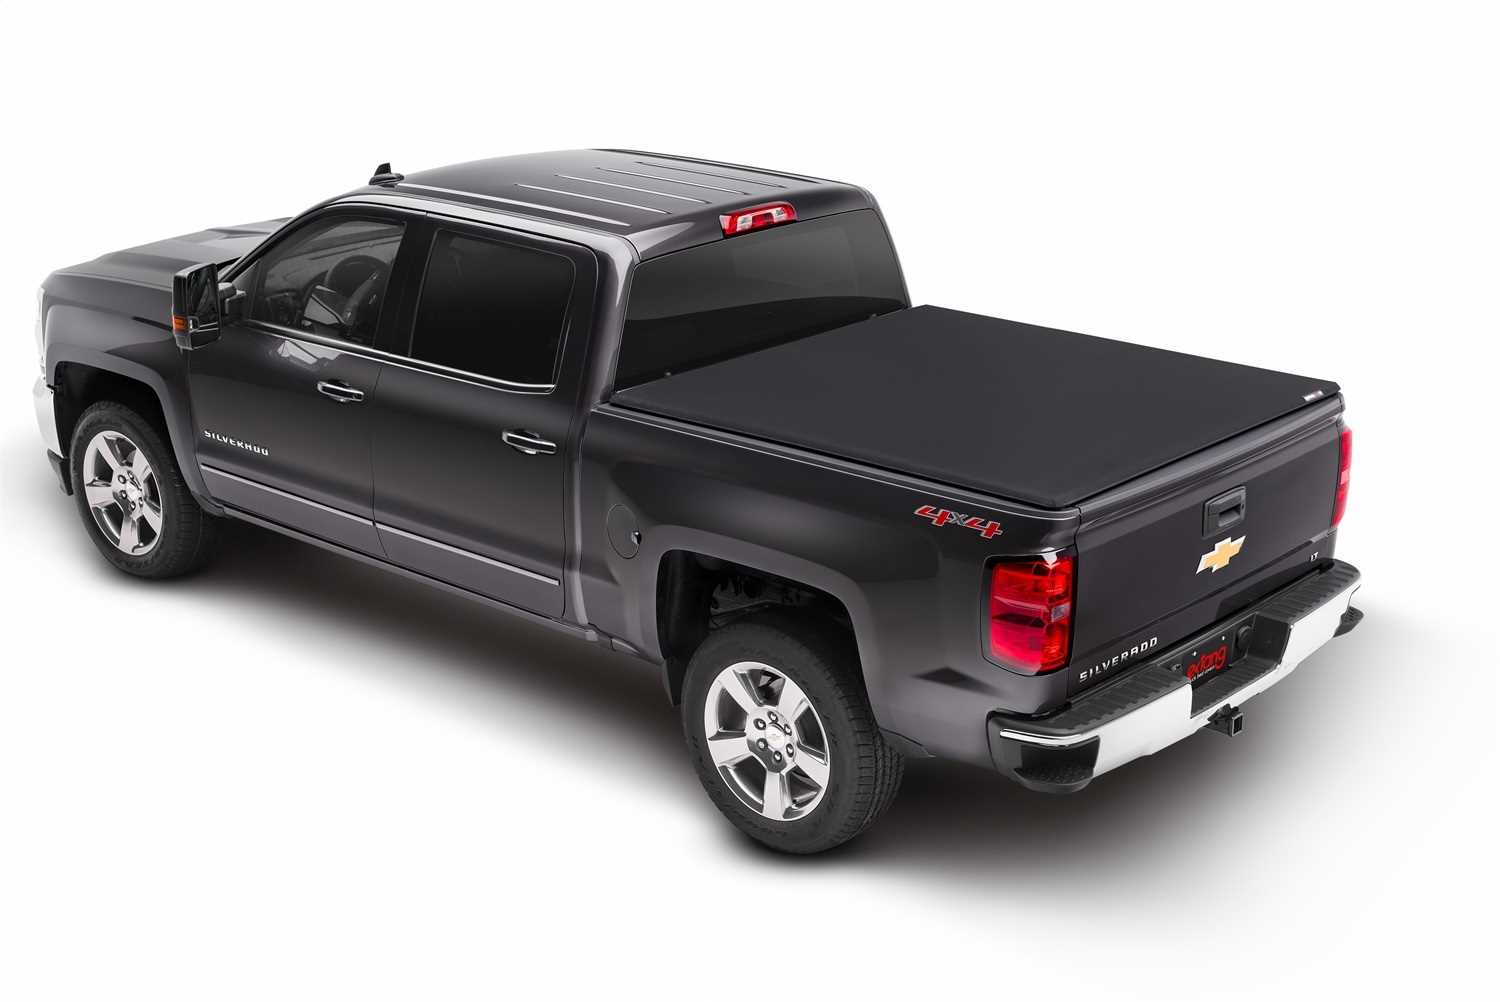 94455 Extang Trifecta Signature 2.0 Tonneau Cover